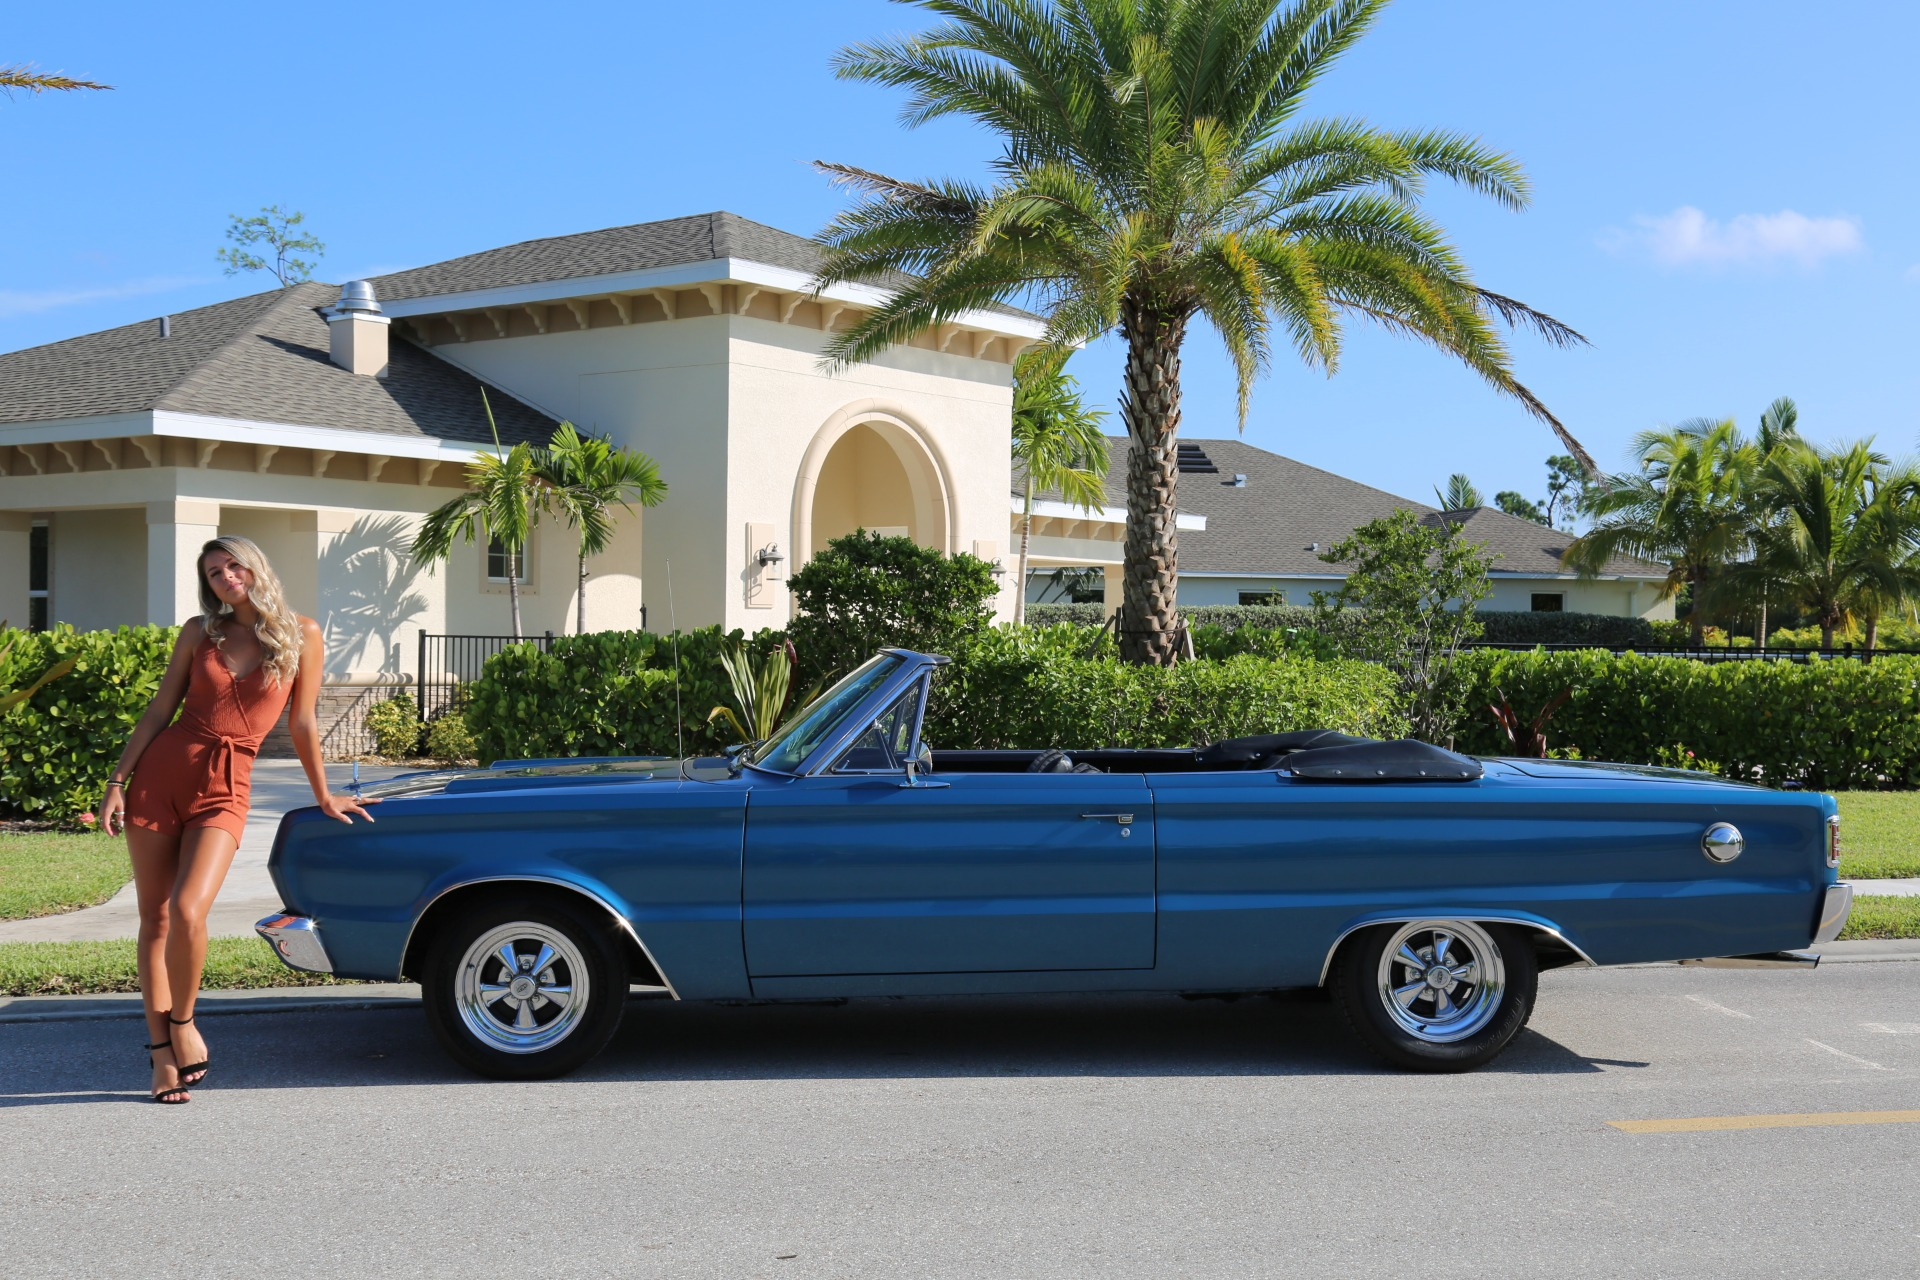 Used 1966 Plymouth Belvedere 383 V8 for sale Sold at Muscle Cars for Sale Inc. in Fort Myers FL 33912 2